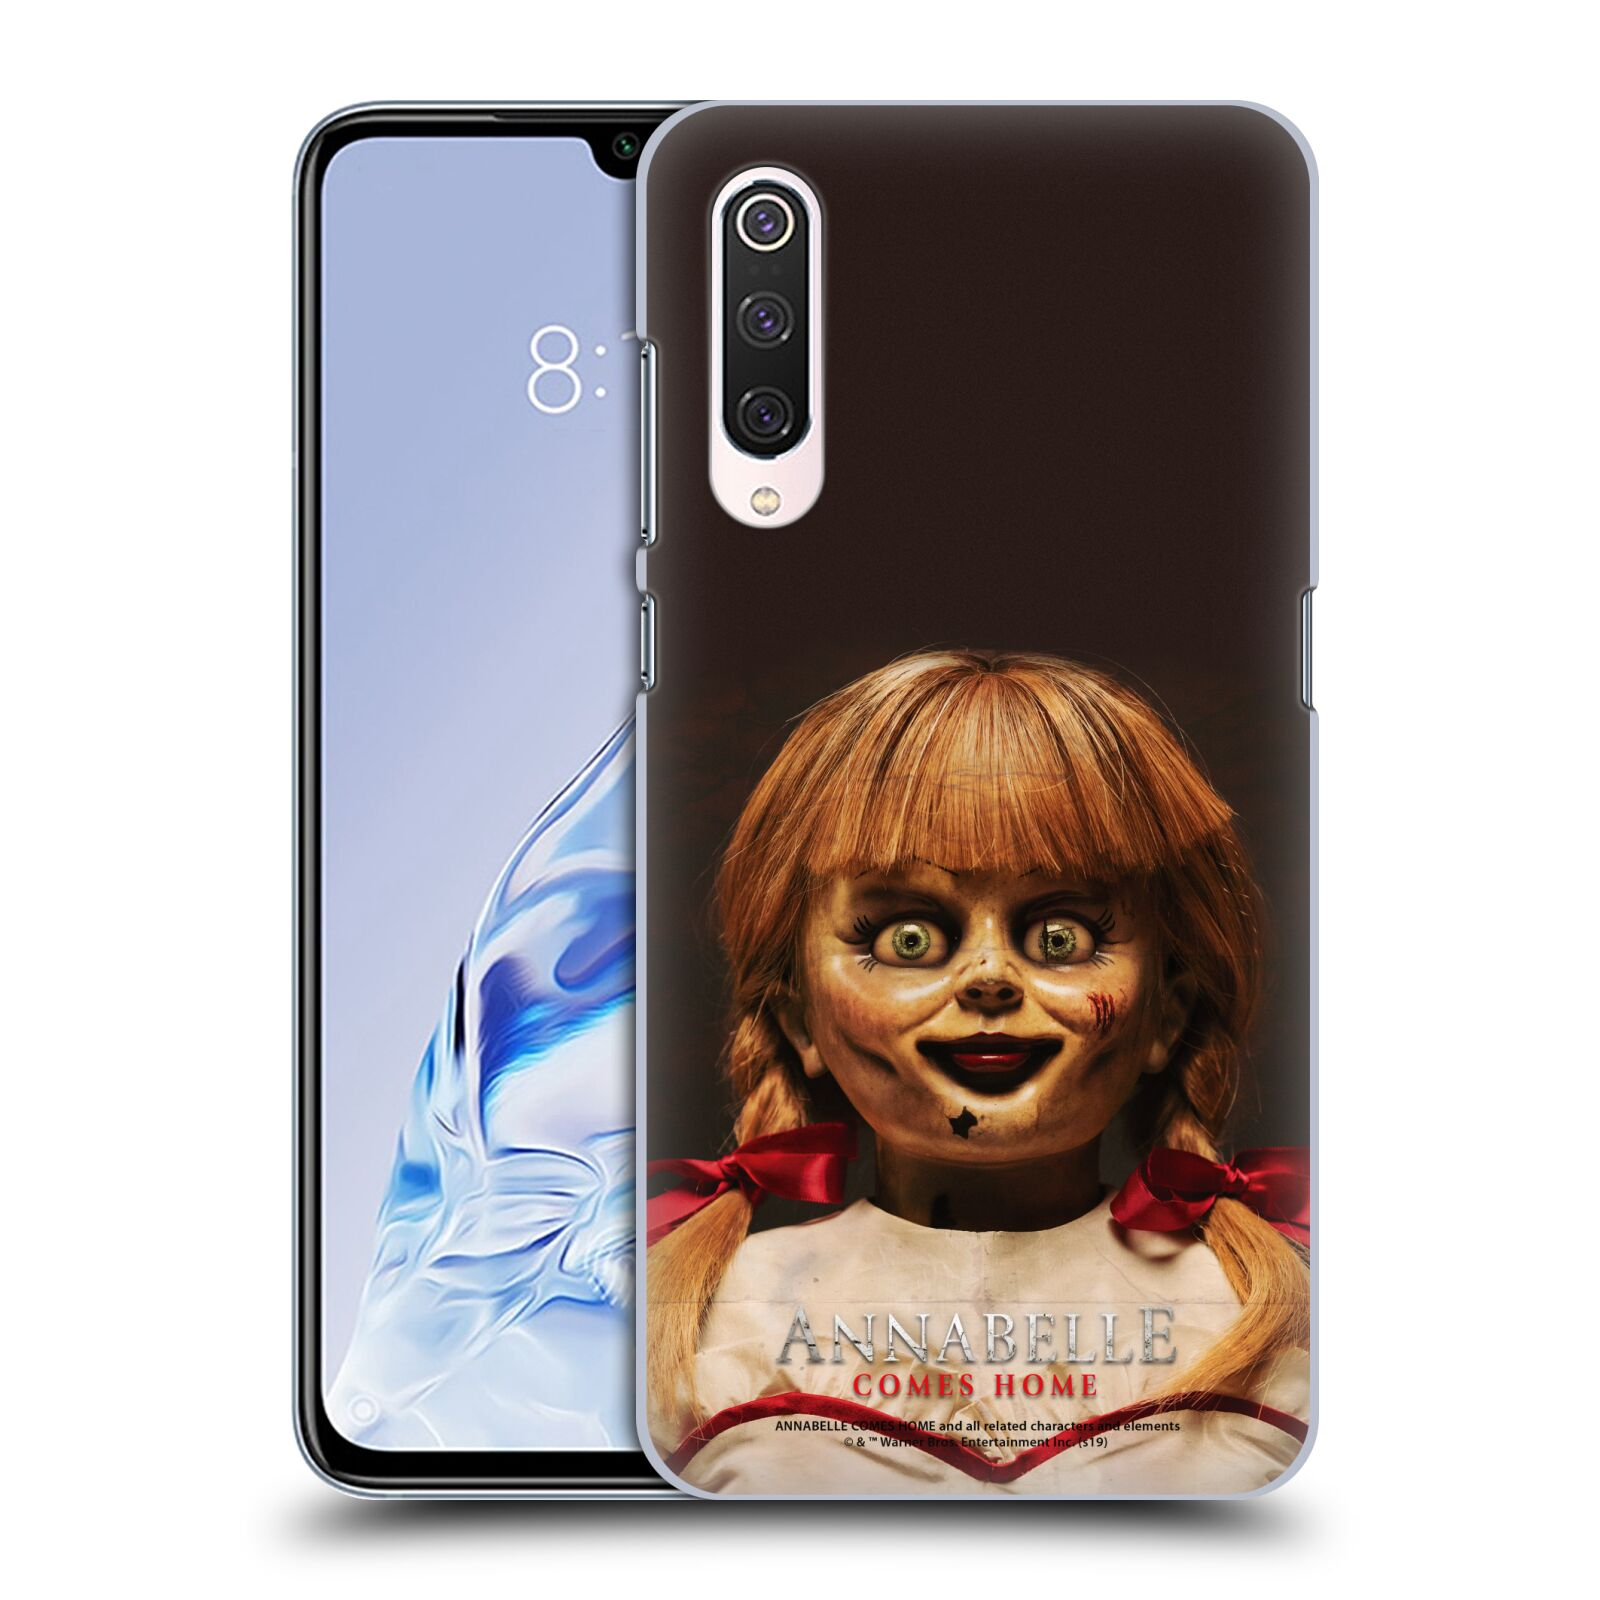 Official Annabelle Comes Home Doll Photography Portrait Case for Xiaomi Mi 9 Pro / 5G